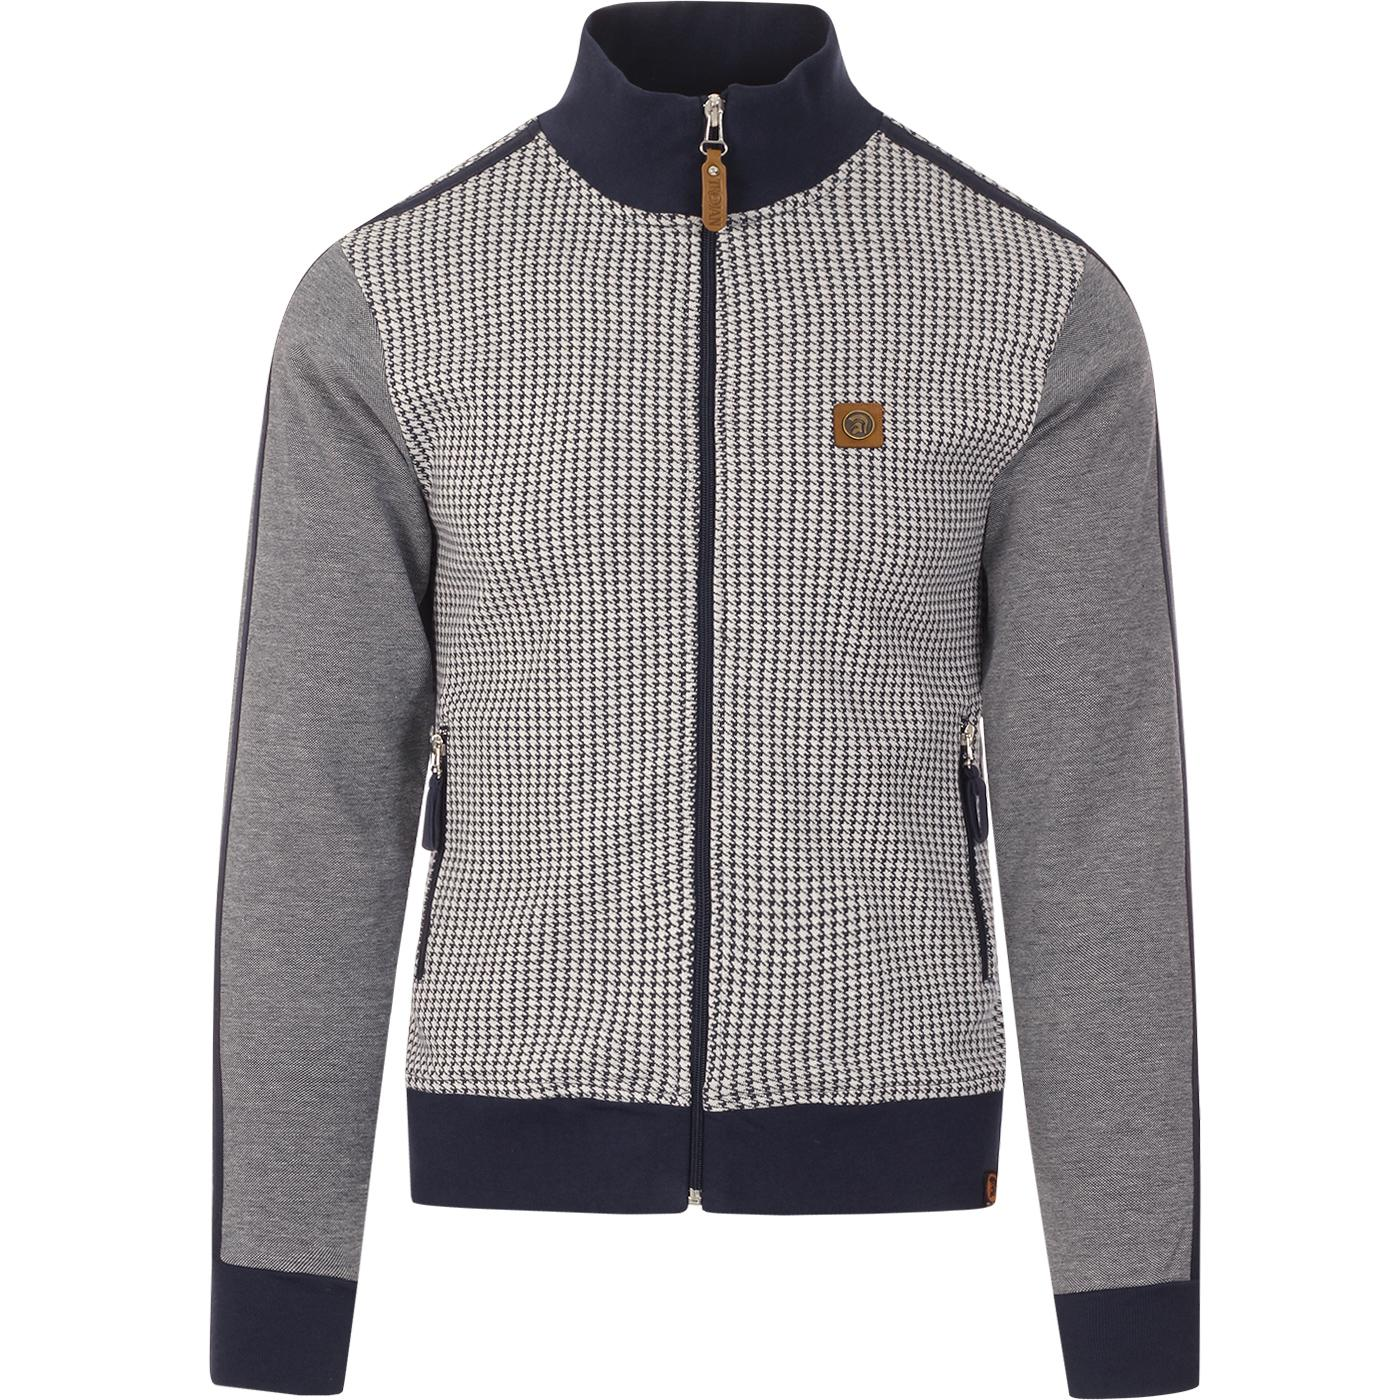 TROJAN RECORDS Mod Dogtooth Panel Track Jacket (N)